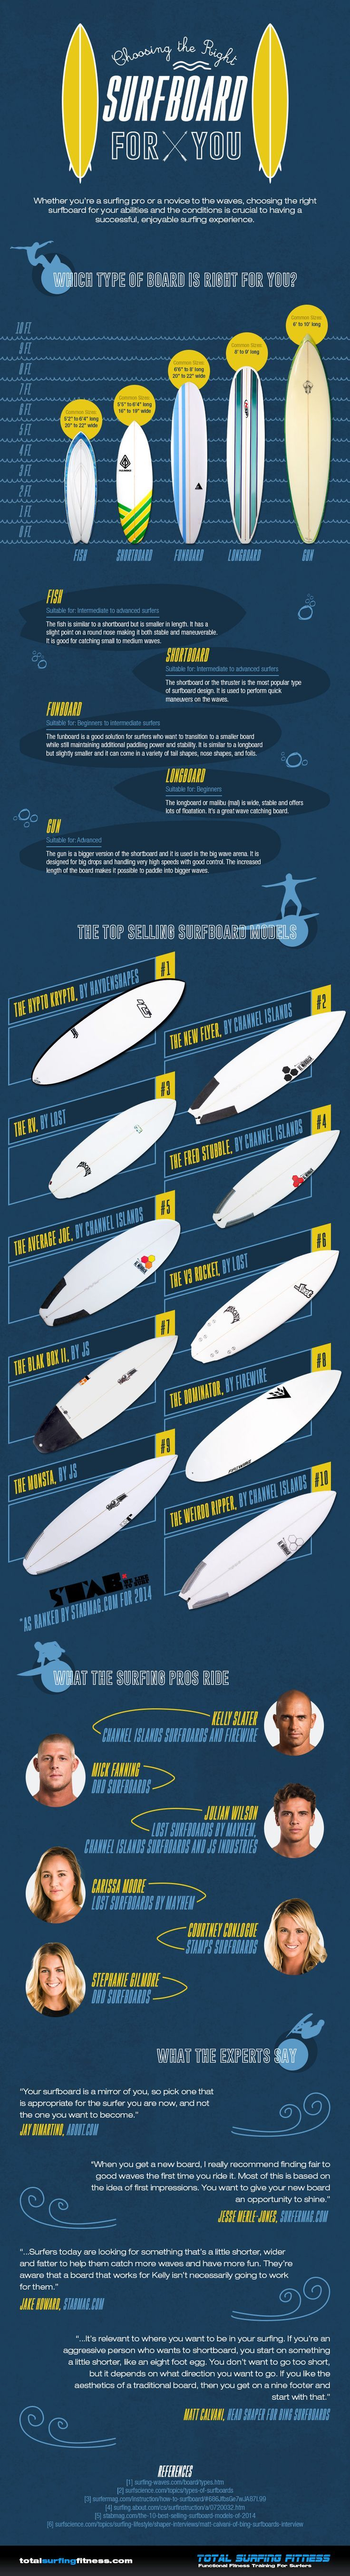 099fefe964 Travel infographic - Choosing the Right Surfboard for You | Travel ...